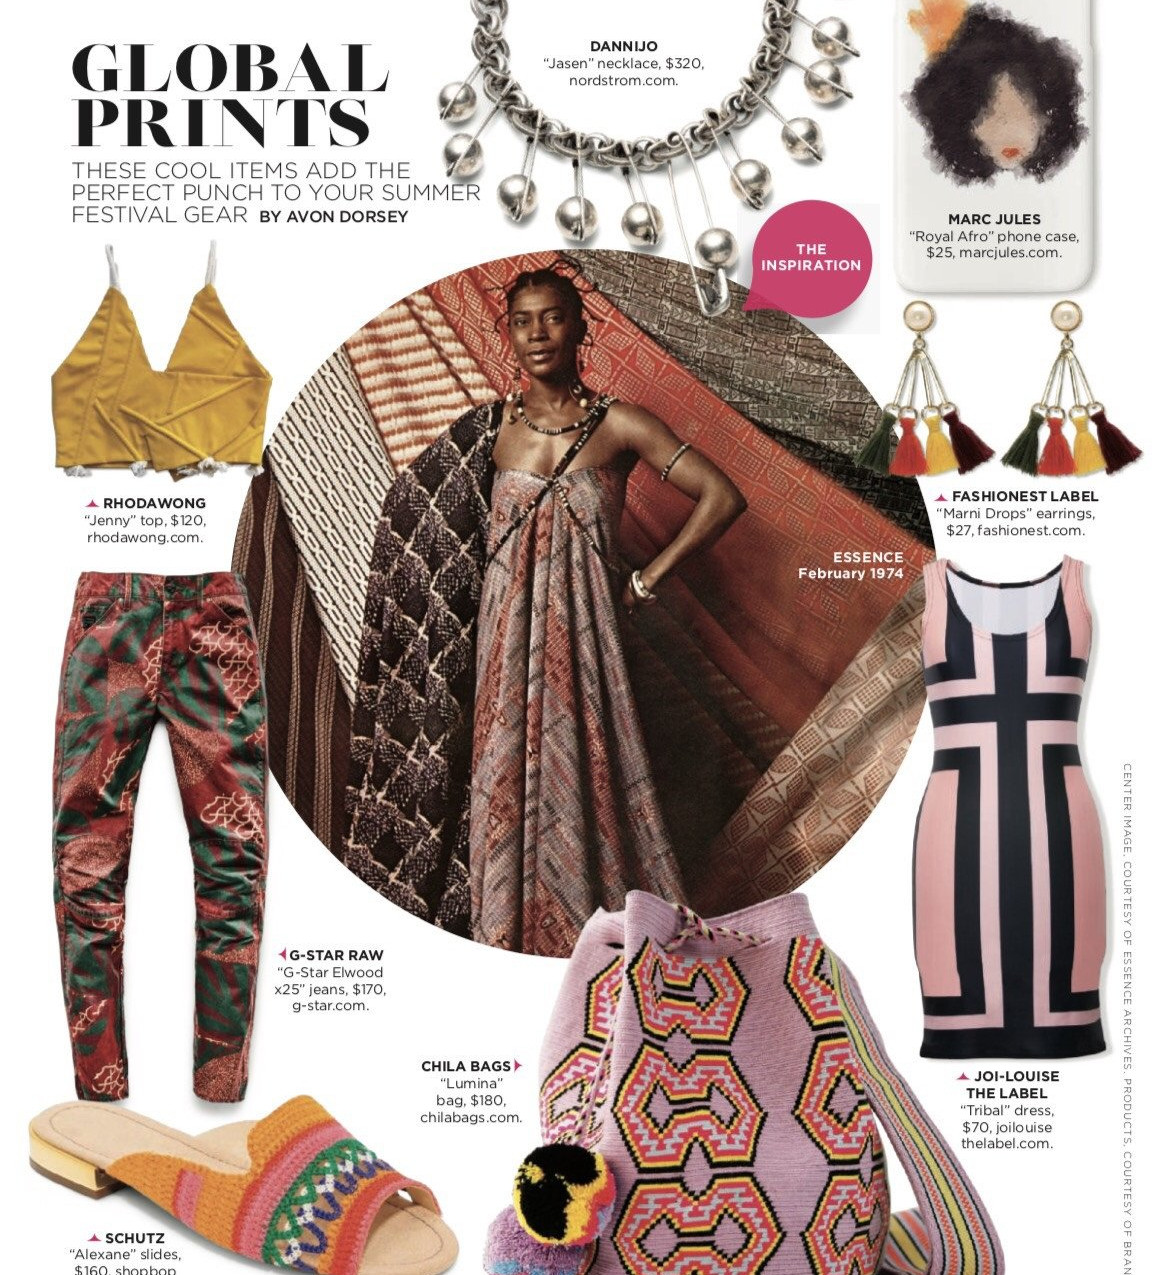 joi louise the label tribal dress as seen in essence